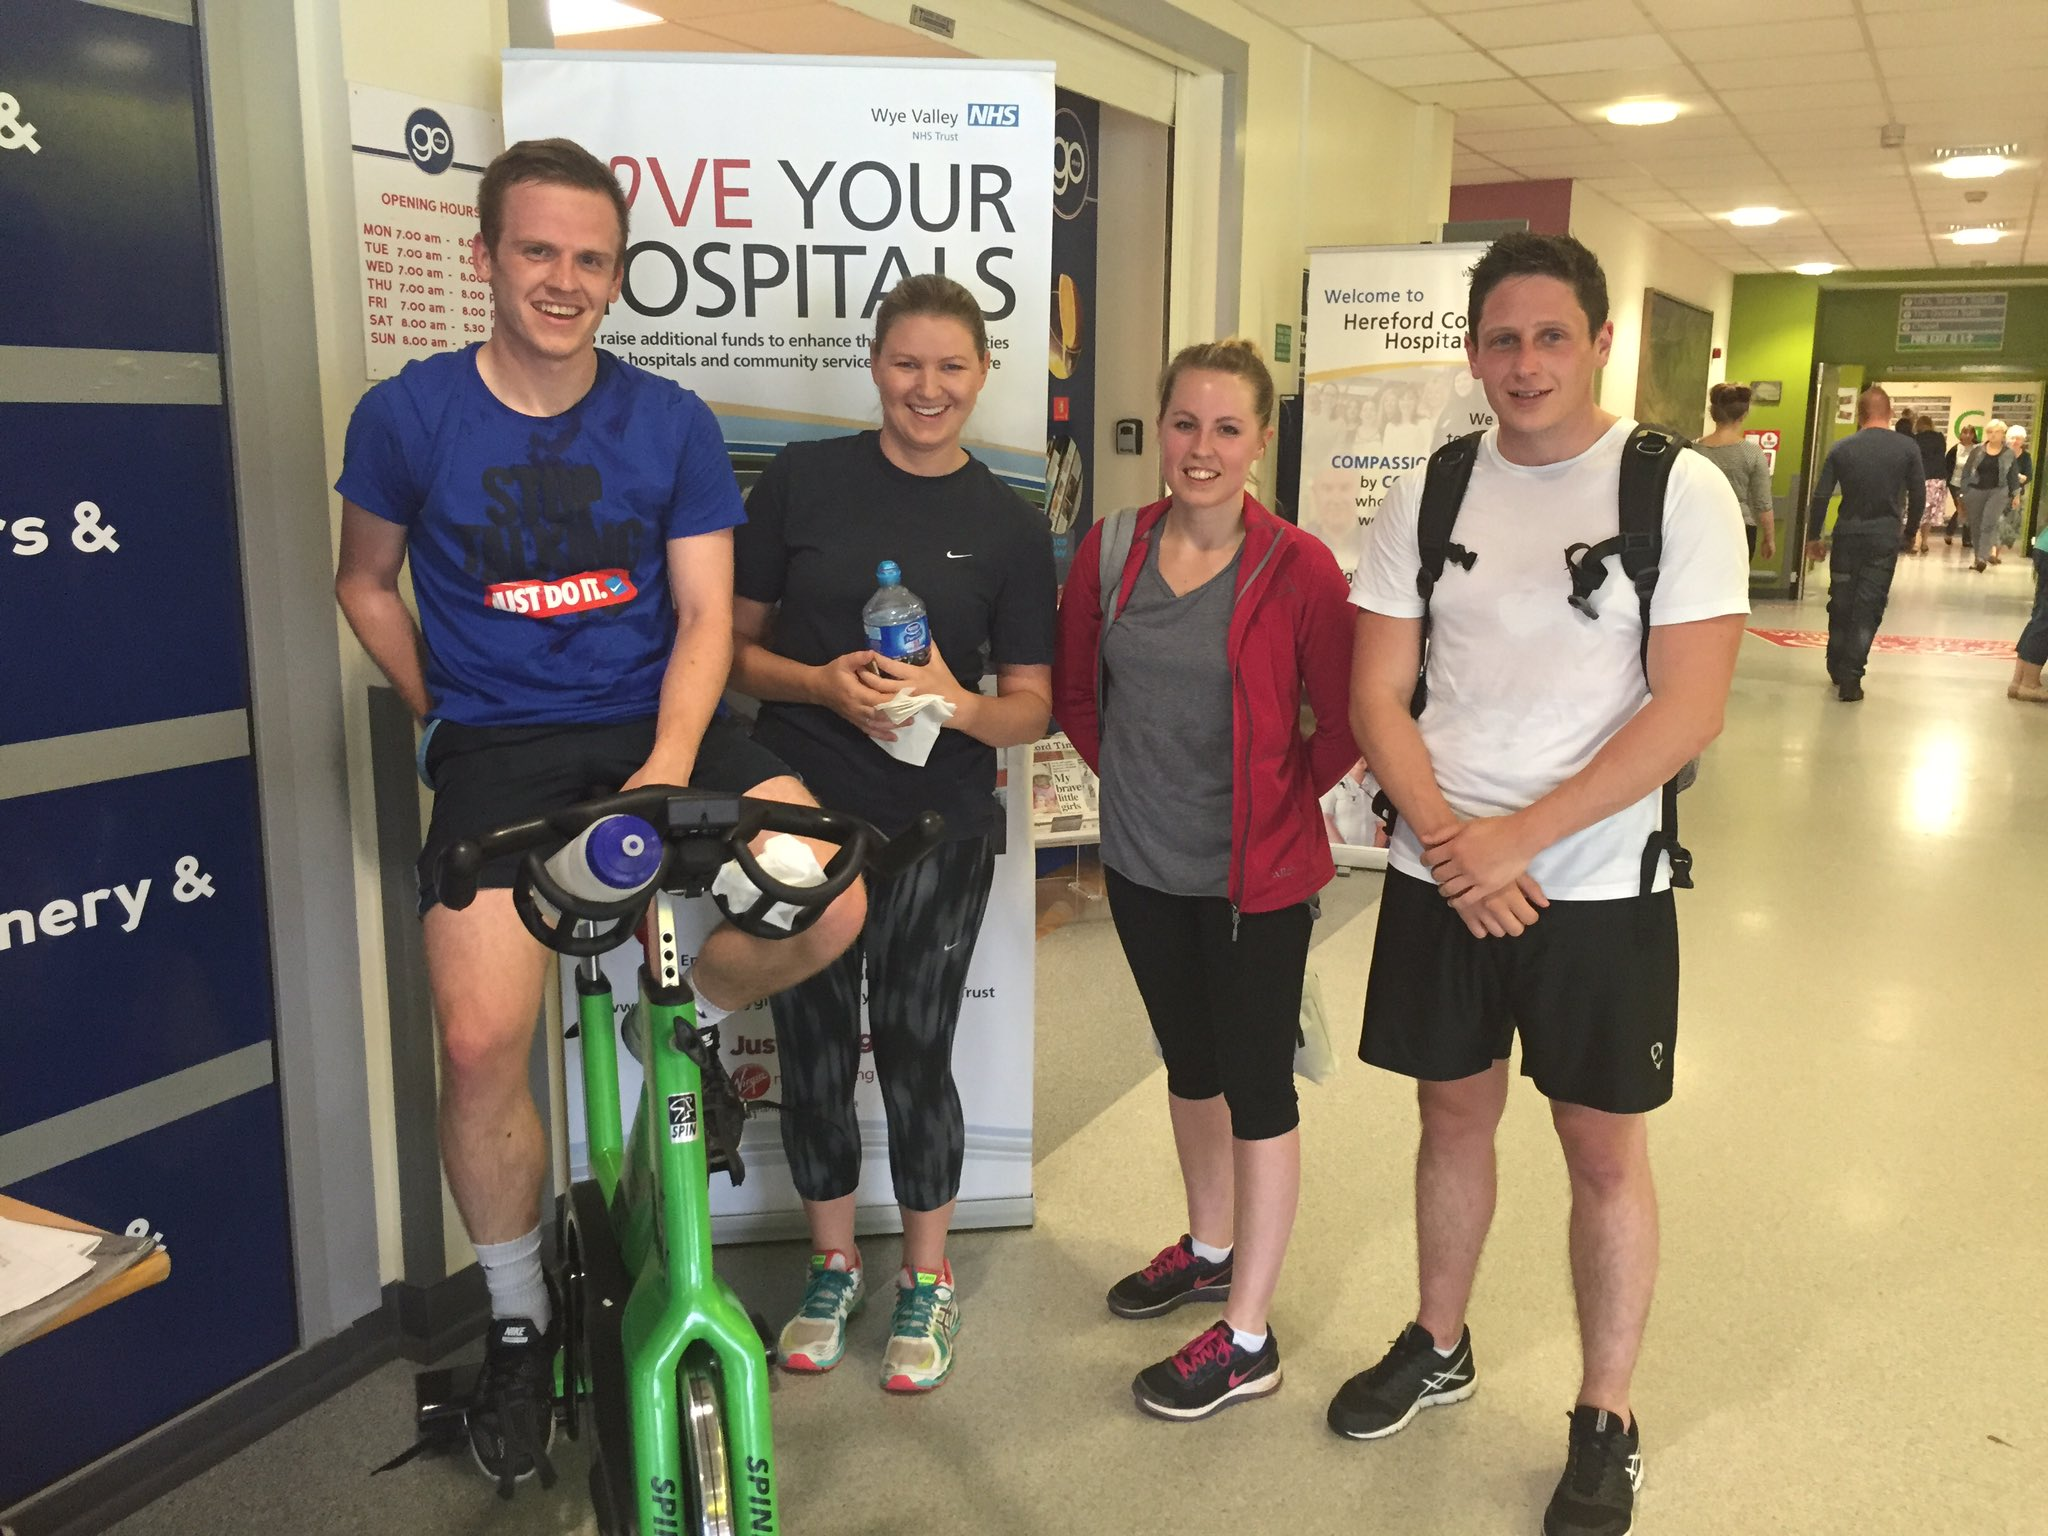 "@HowardOddy ""team finance"" spinning for #EachBabyCounts they have covered miles! Well done chaps #FinanceActive https://t.co/9TN5nzkDqX"